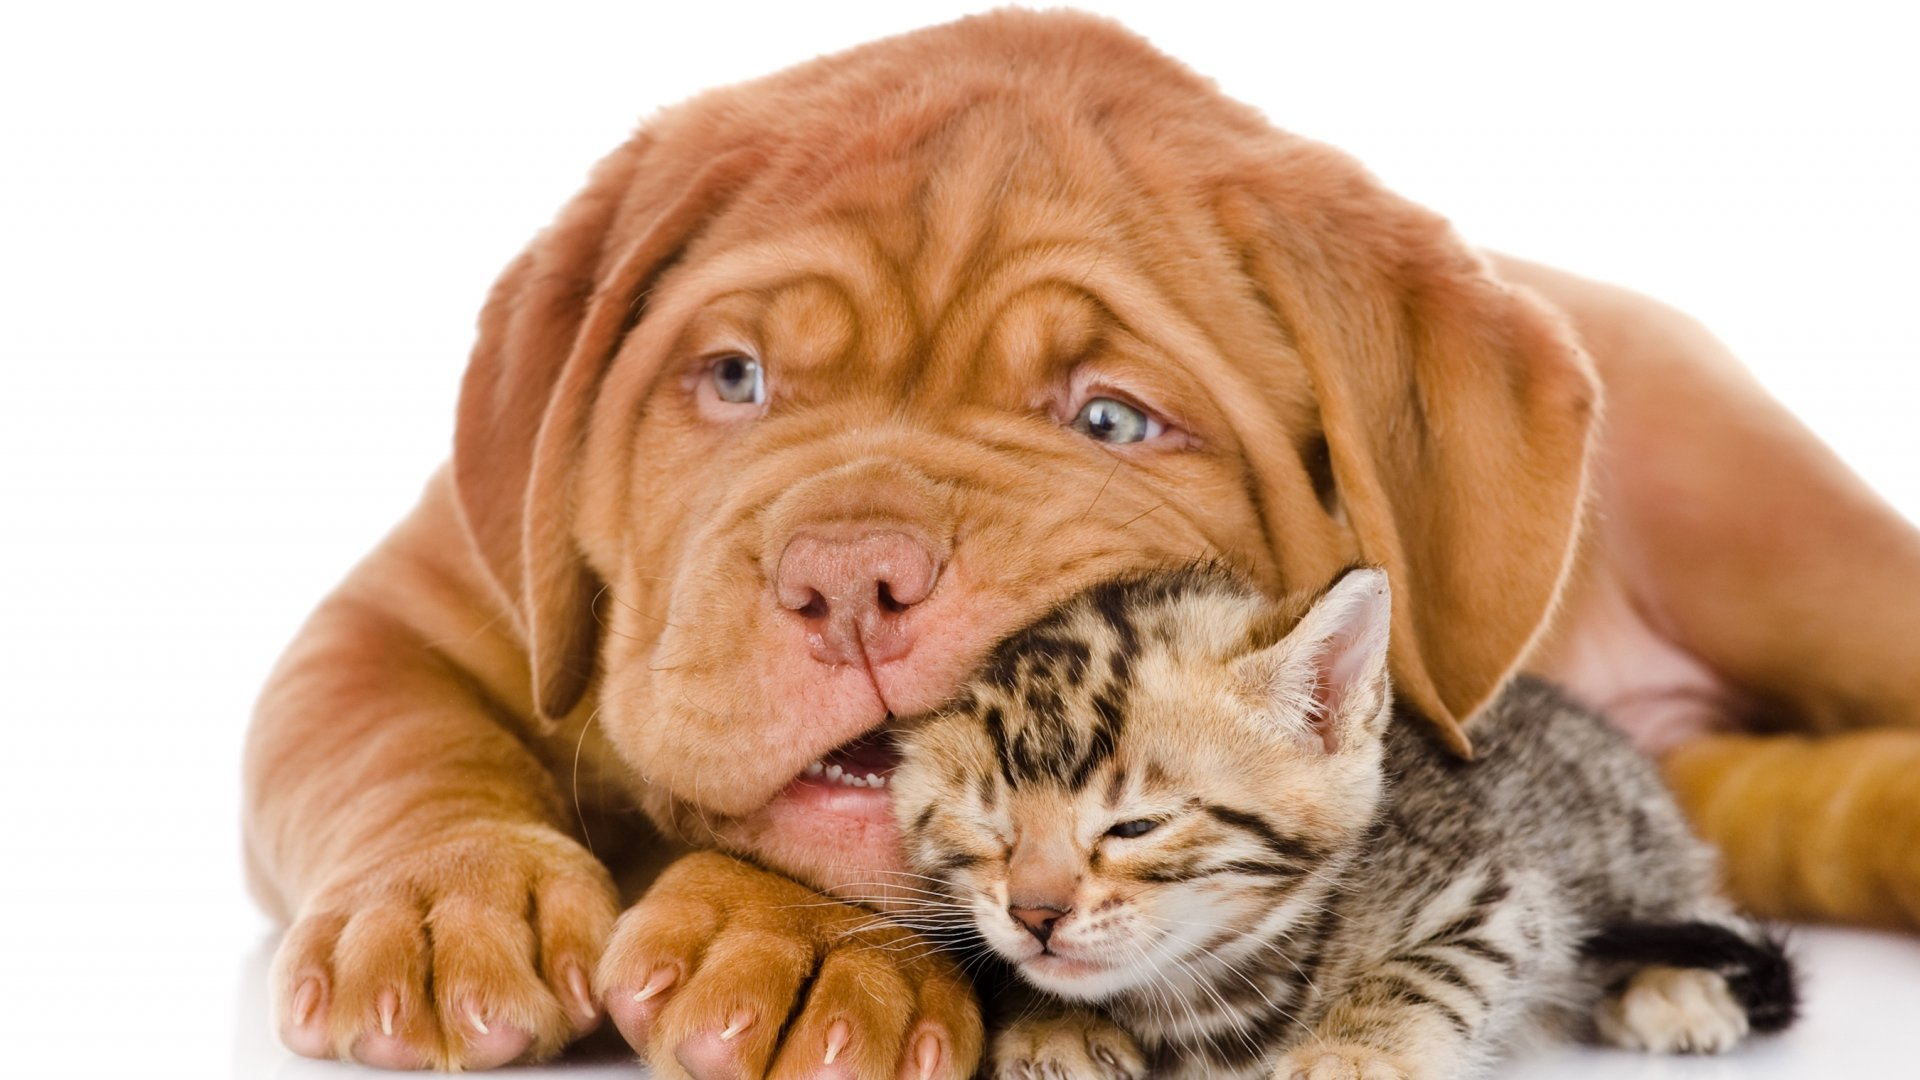 Awesome Cat and Dog free wallpaper ID:125367 for full hd computer